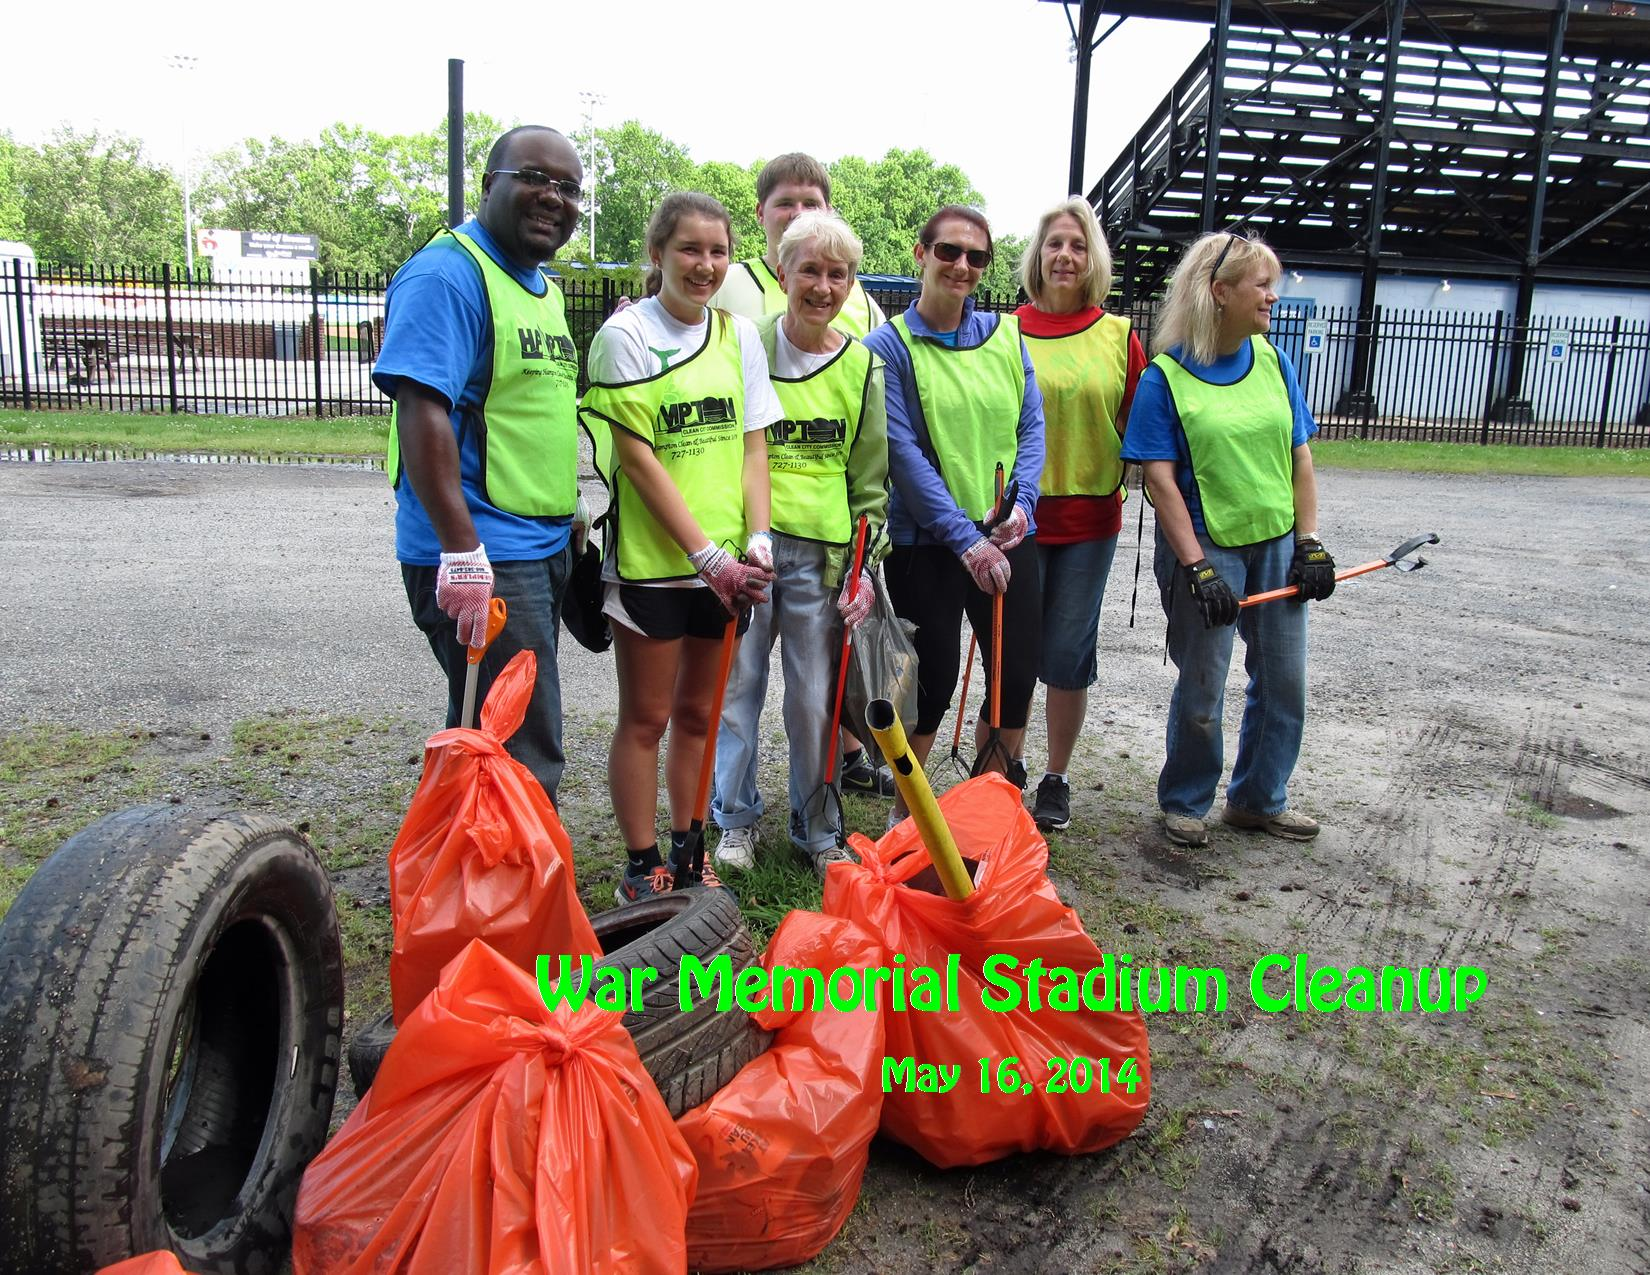 5-16-14 War Memorial Cleanup Group